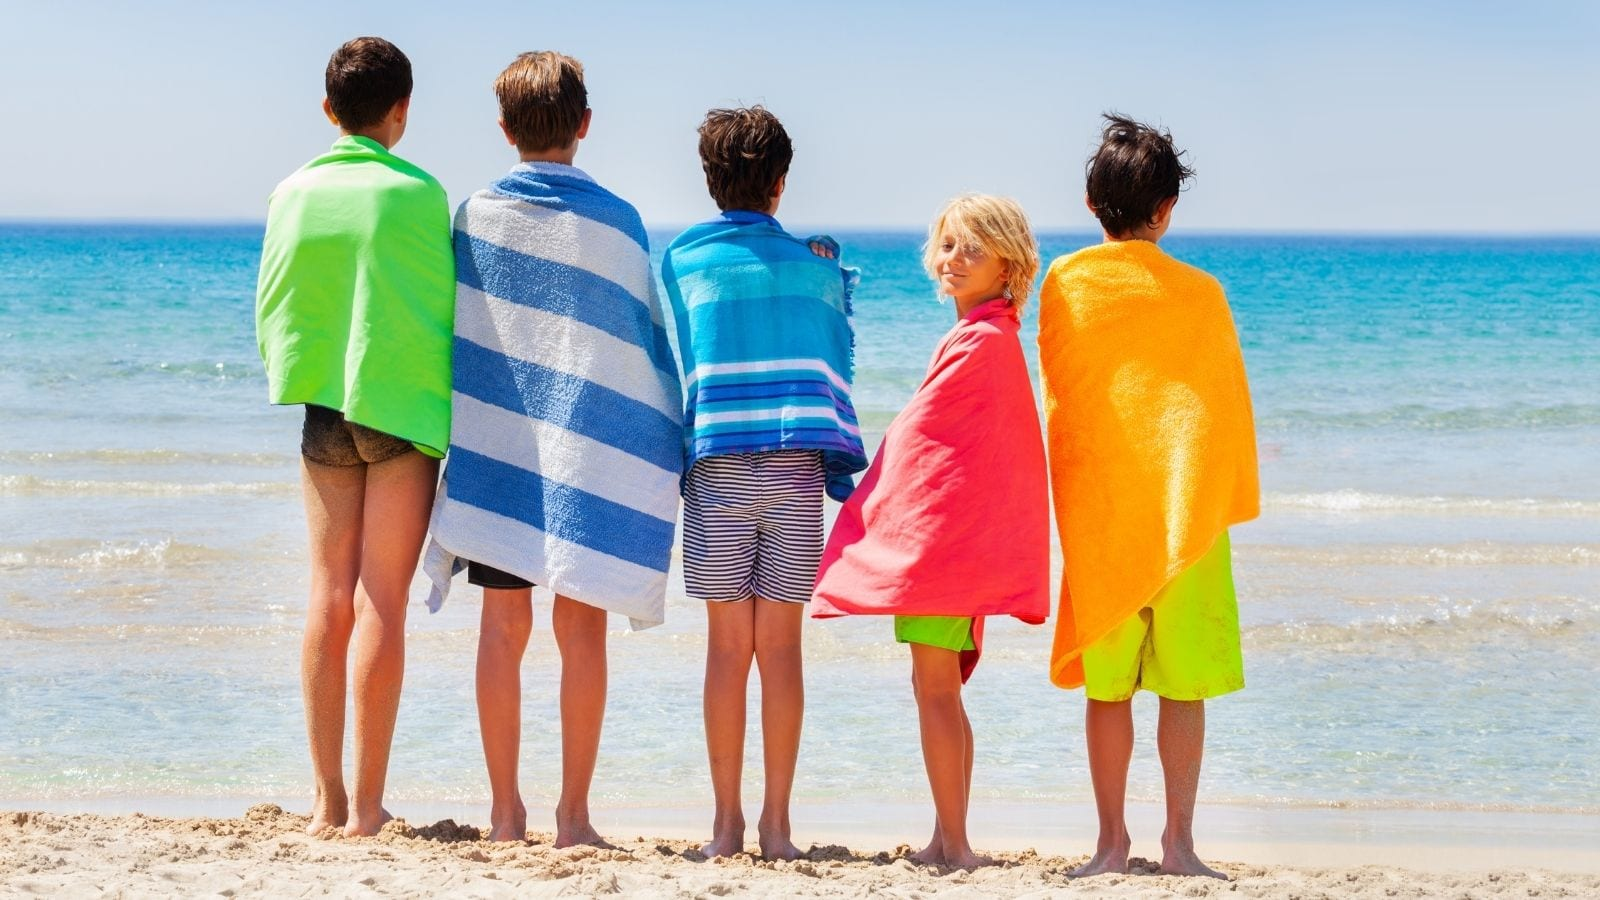 Kids drying off with beach towels after swimming (Photo: Sergey Novikov / Shutterstock)